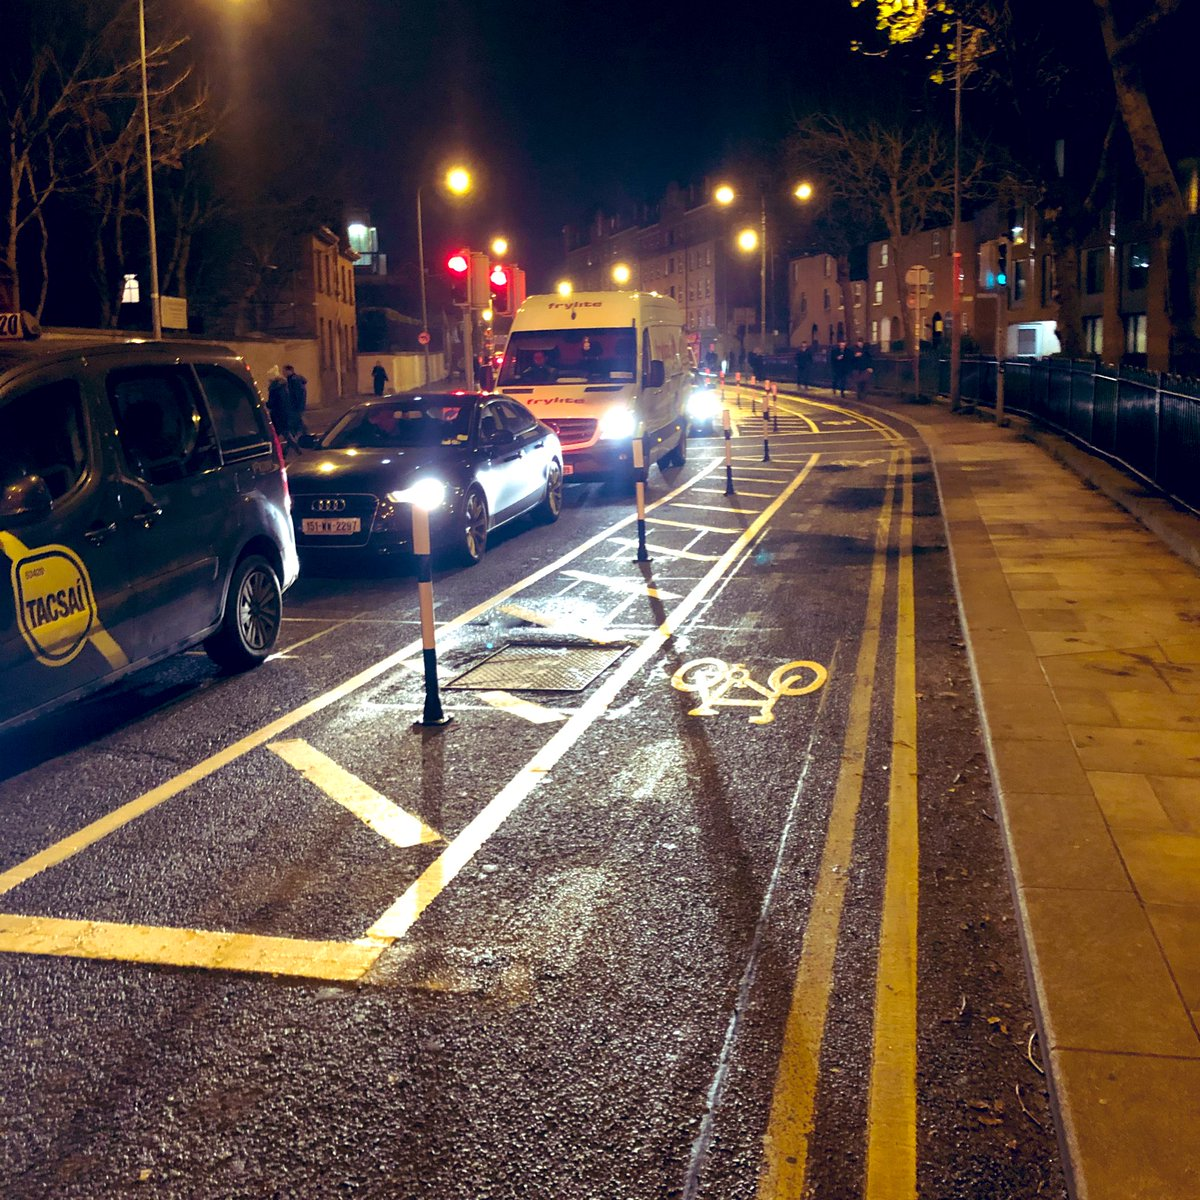 New separation of cars and bicycles on Kevin Street. More of this @DubCityCouncil! Many other places in the city where it would make sense. #FreeTheCycleLanes<br>http://pic.twitter.com/Wu5Q9zFjSk